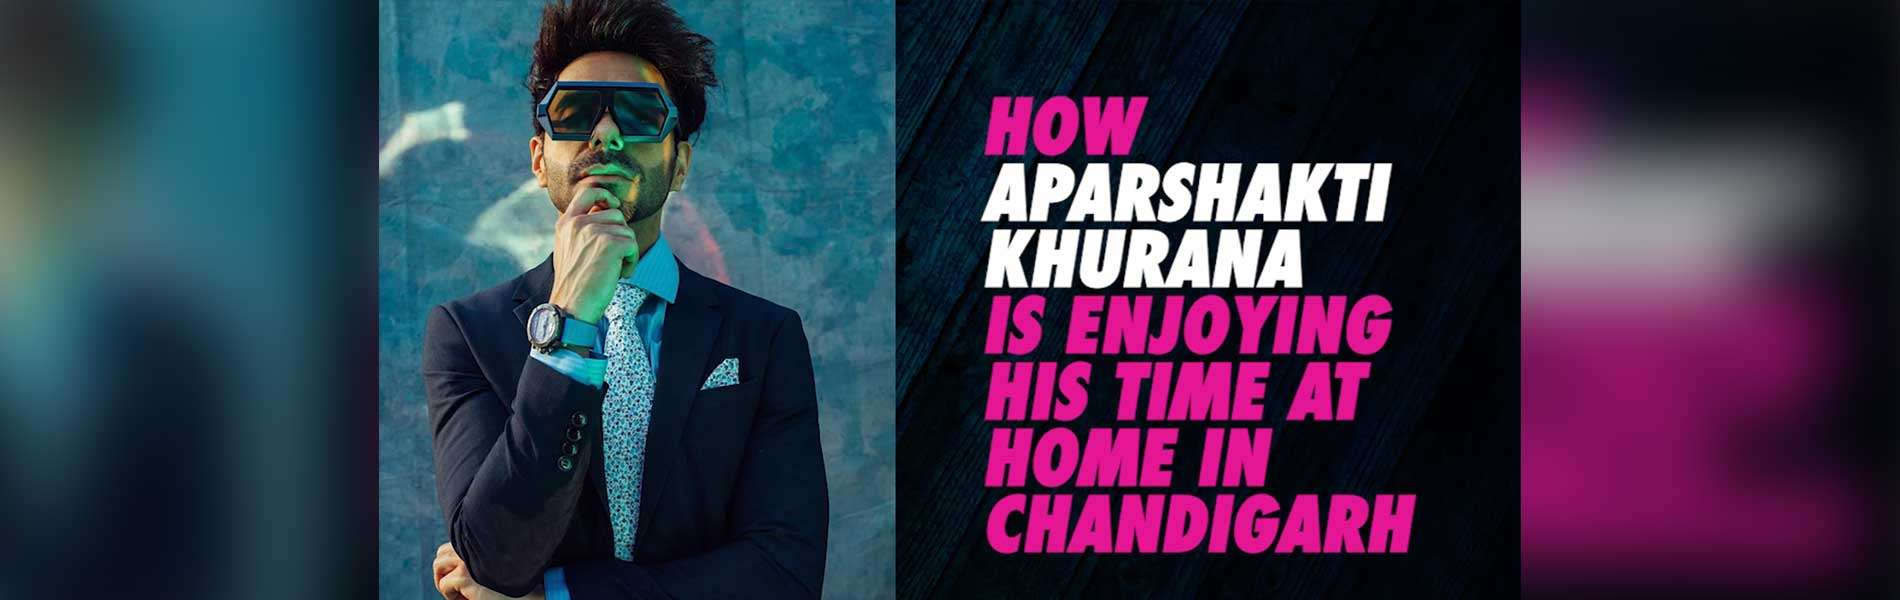 how-aparshakti-khurana-is-enjoying-his-time-at-home-in-chandigarh